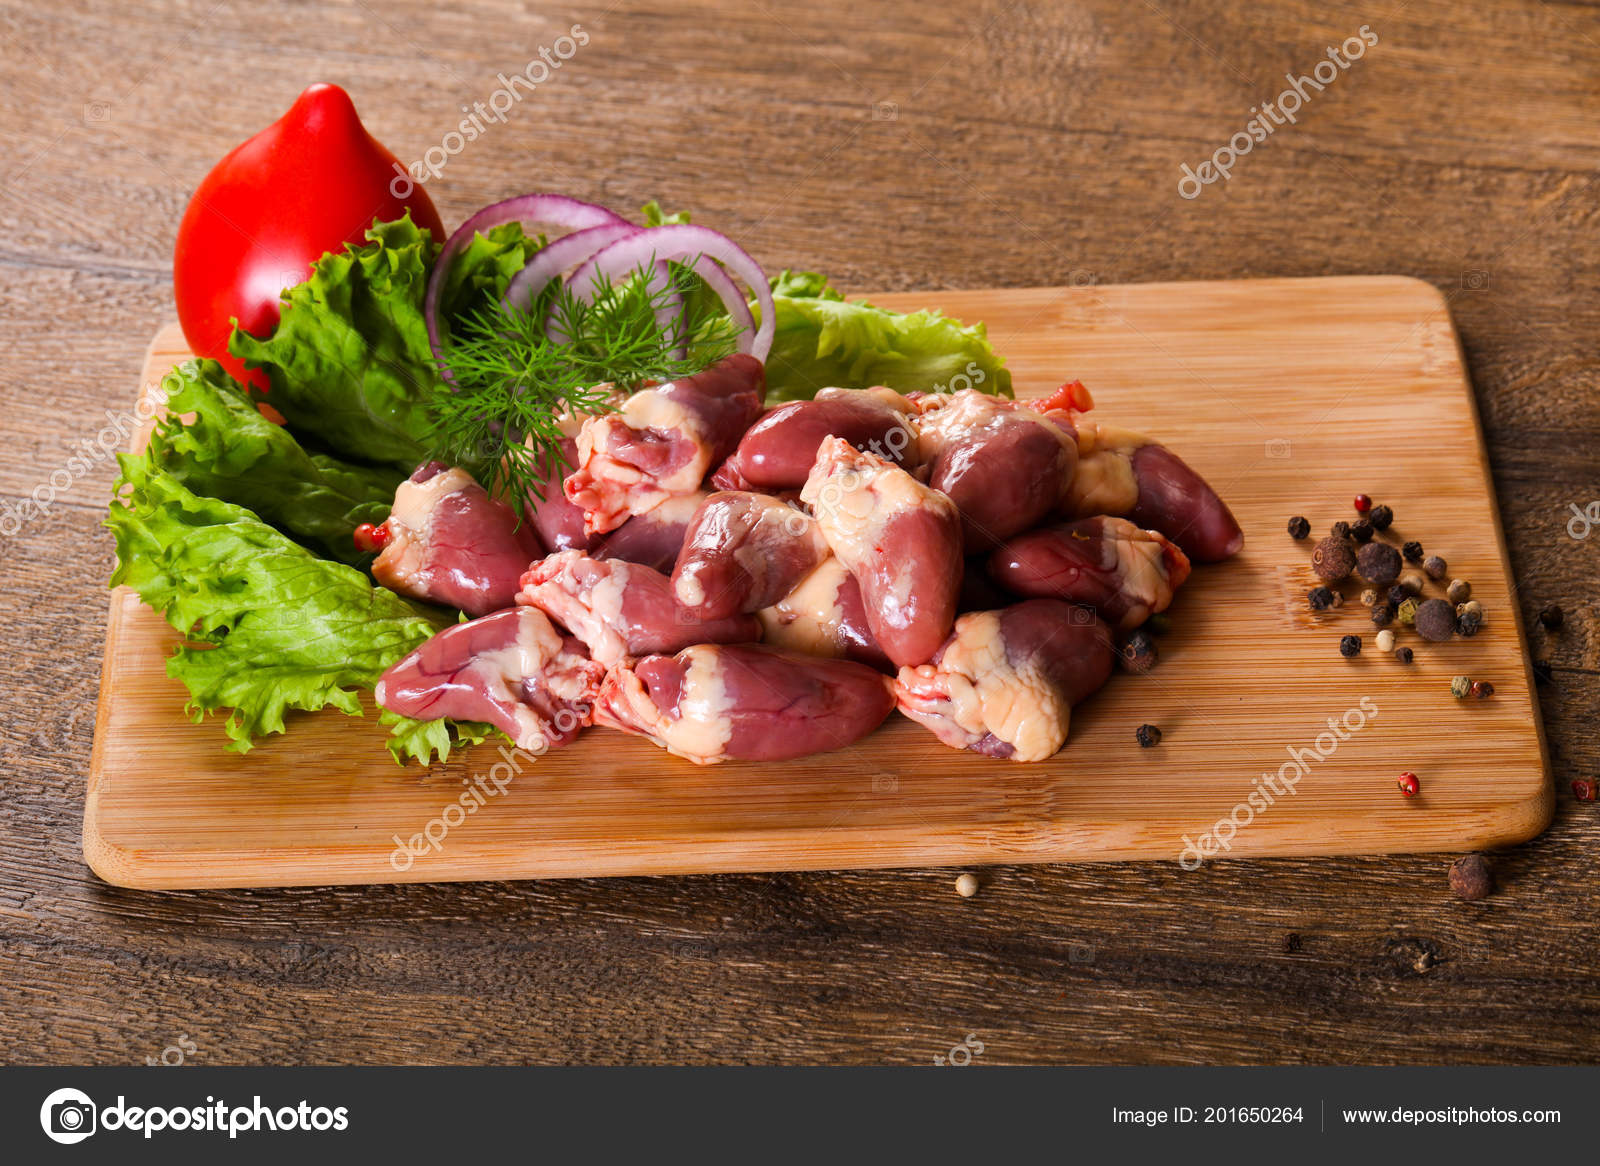 Áˆ Chicken Gizzard Stock Images Royalty Free Chicken Gizzard Photos Download On Depositphotos